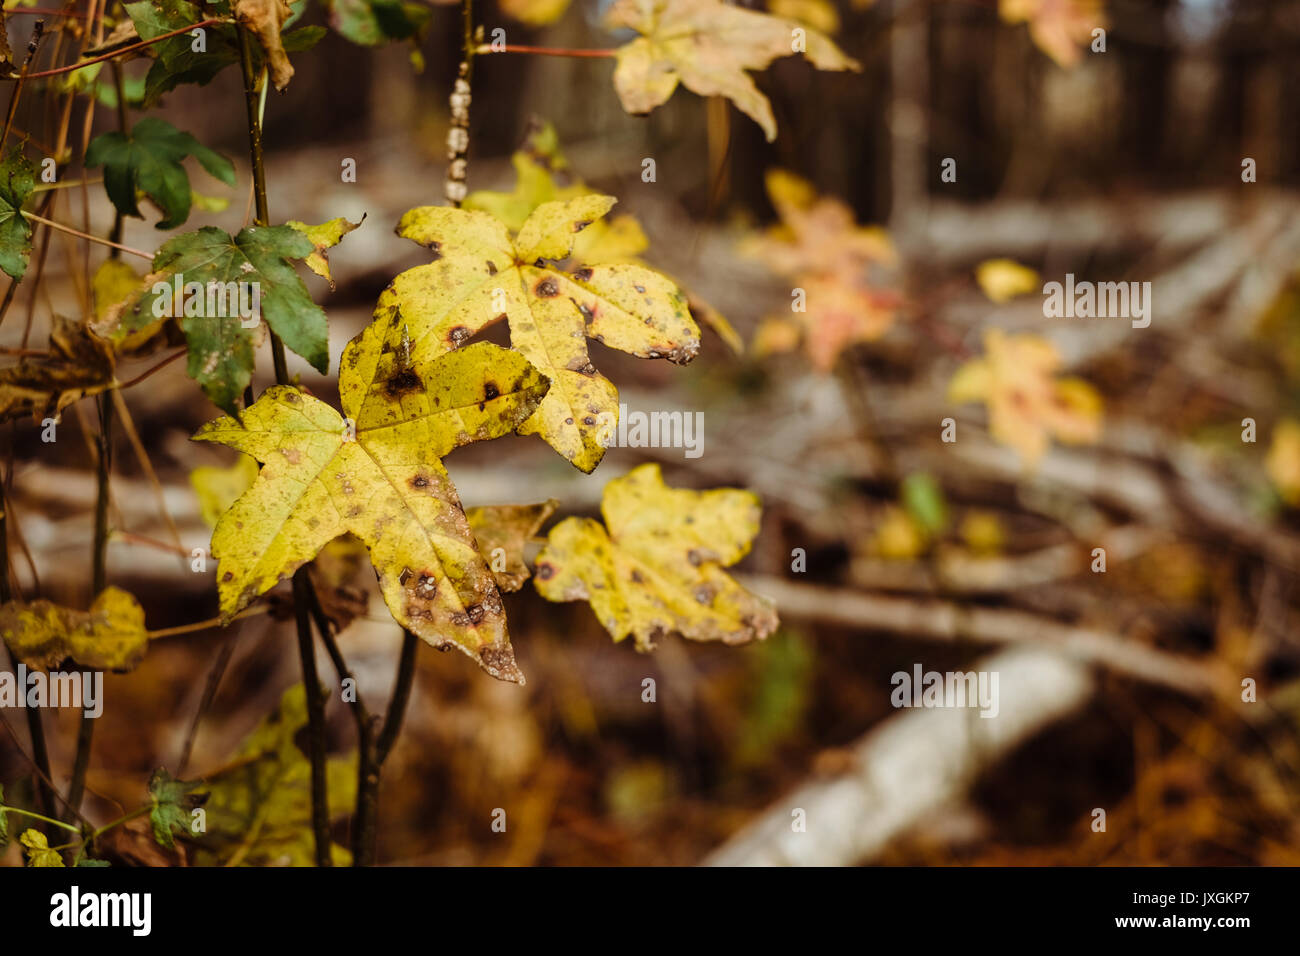 Yellow oak leaves in a dense forest turning color during the autumn season. - Stock Image